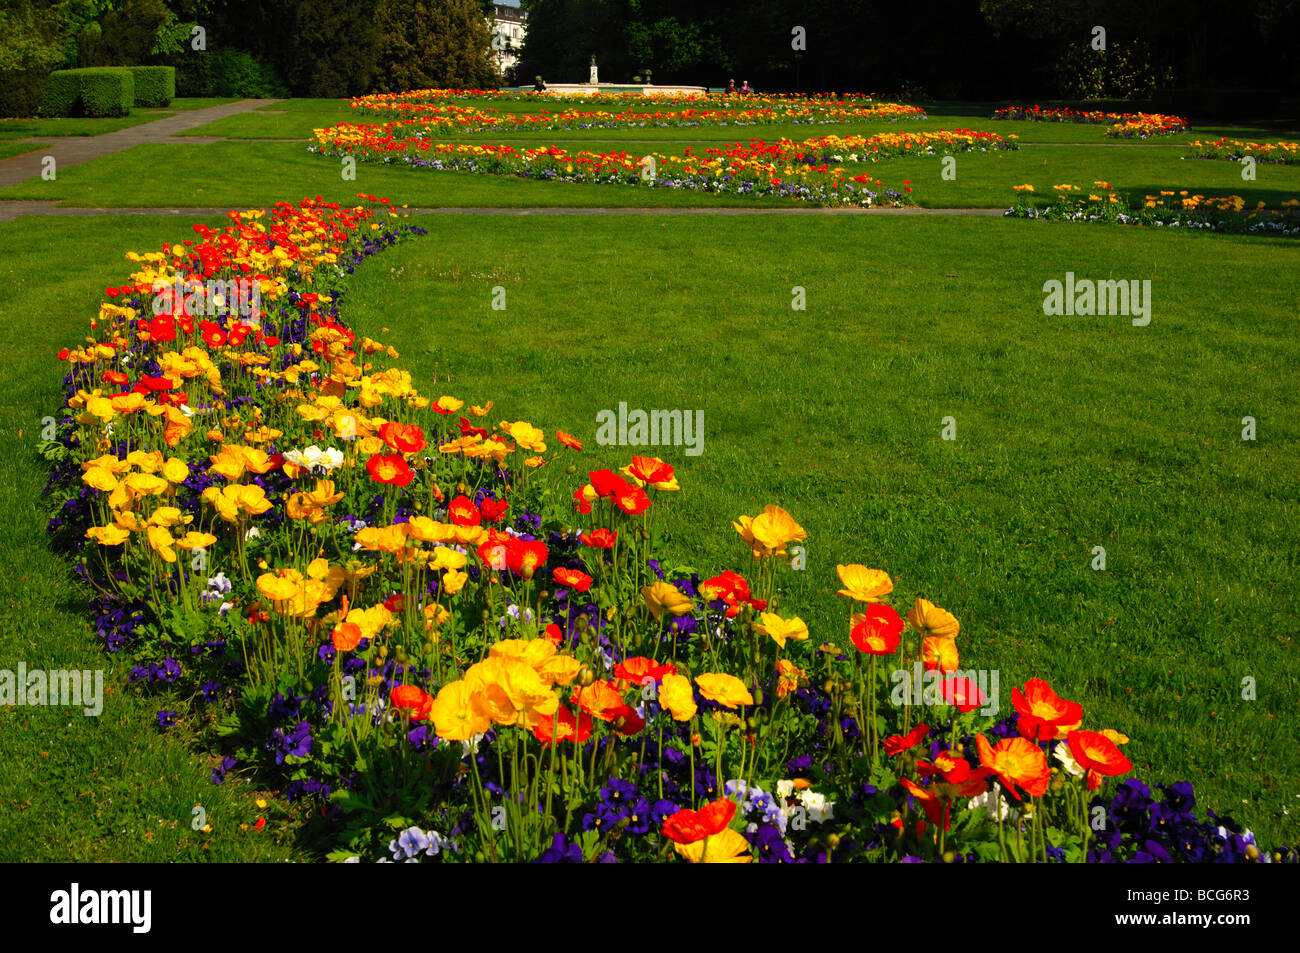 Flower bed in the public parc Mon Repos, Geneva, Switzerland - Stock Image